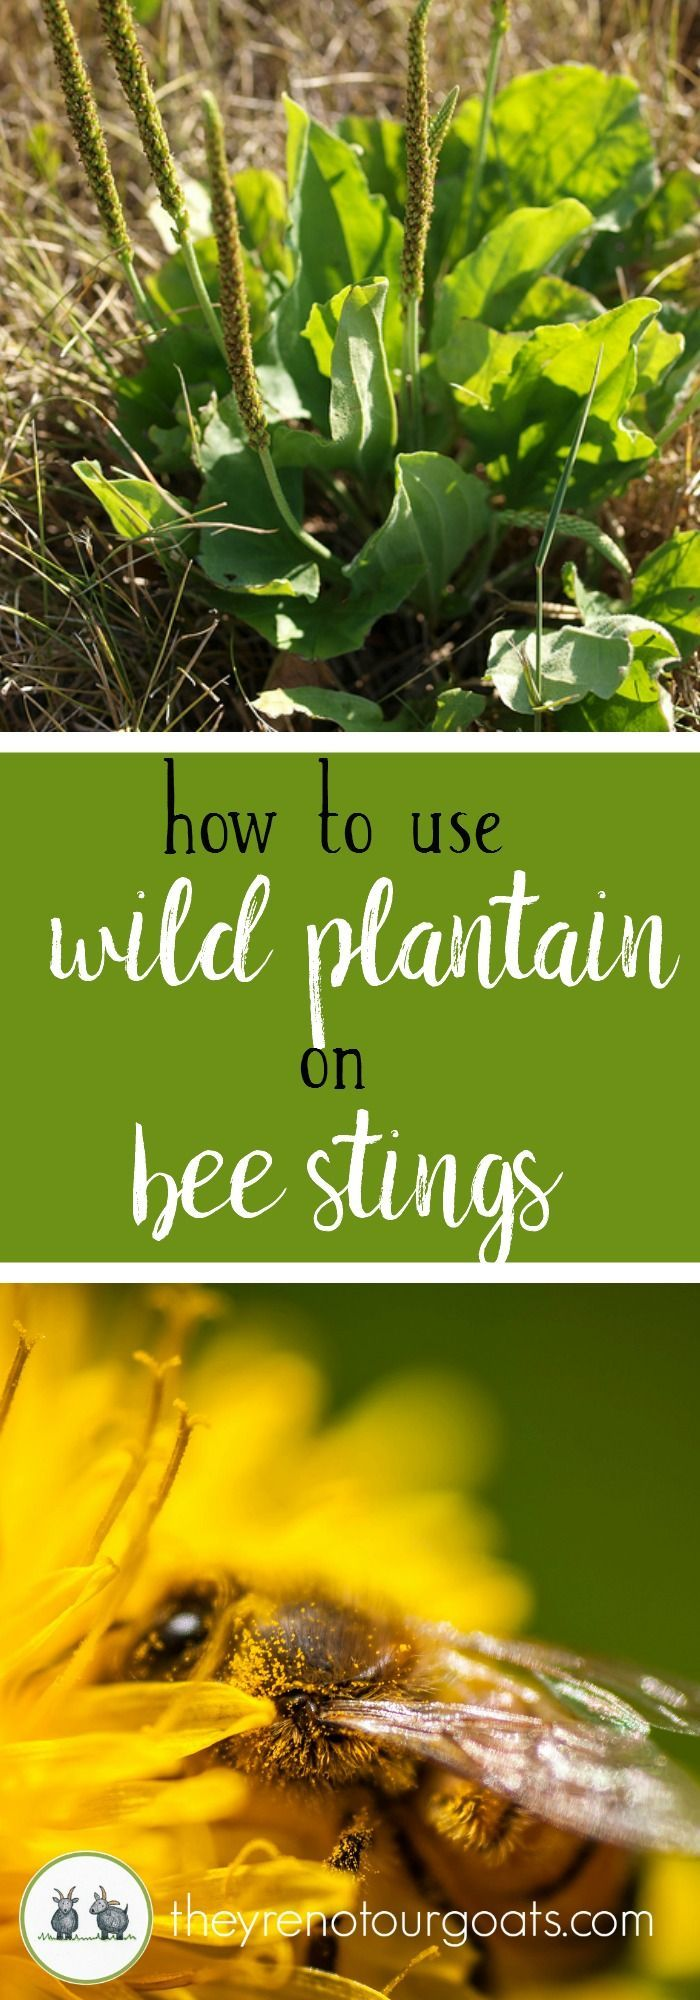 How to Use Wild Plantain on Bee Stings